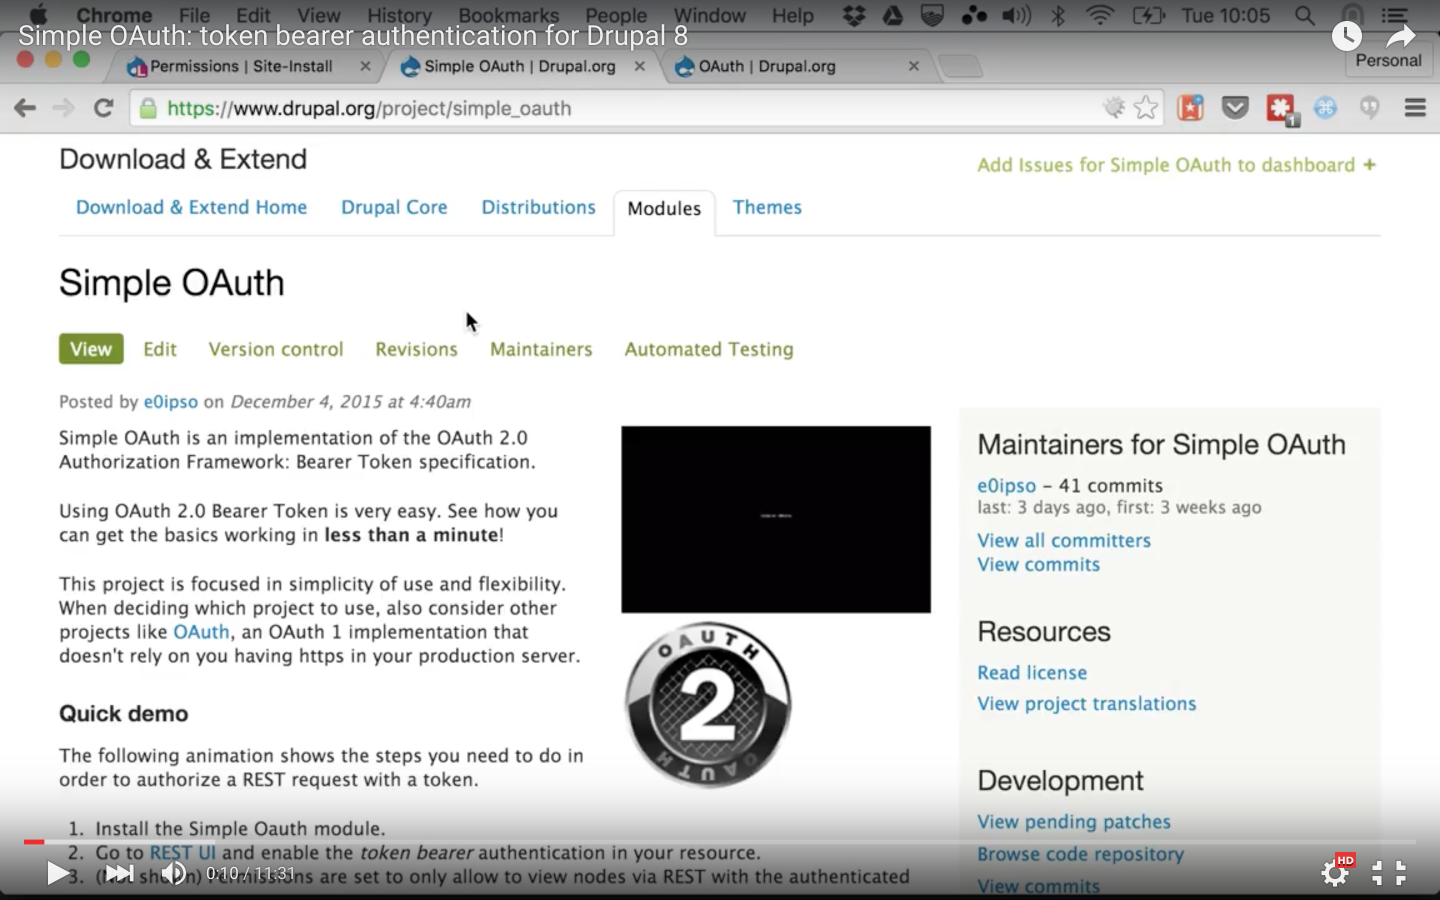 Simple OAuth: token bearer authentication for Drupal 8